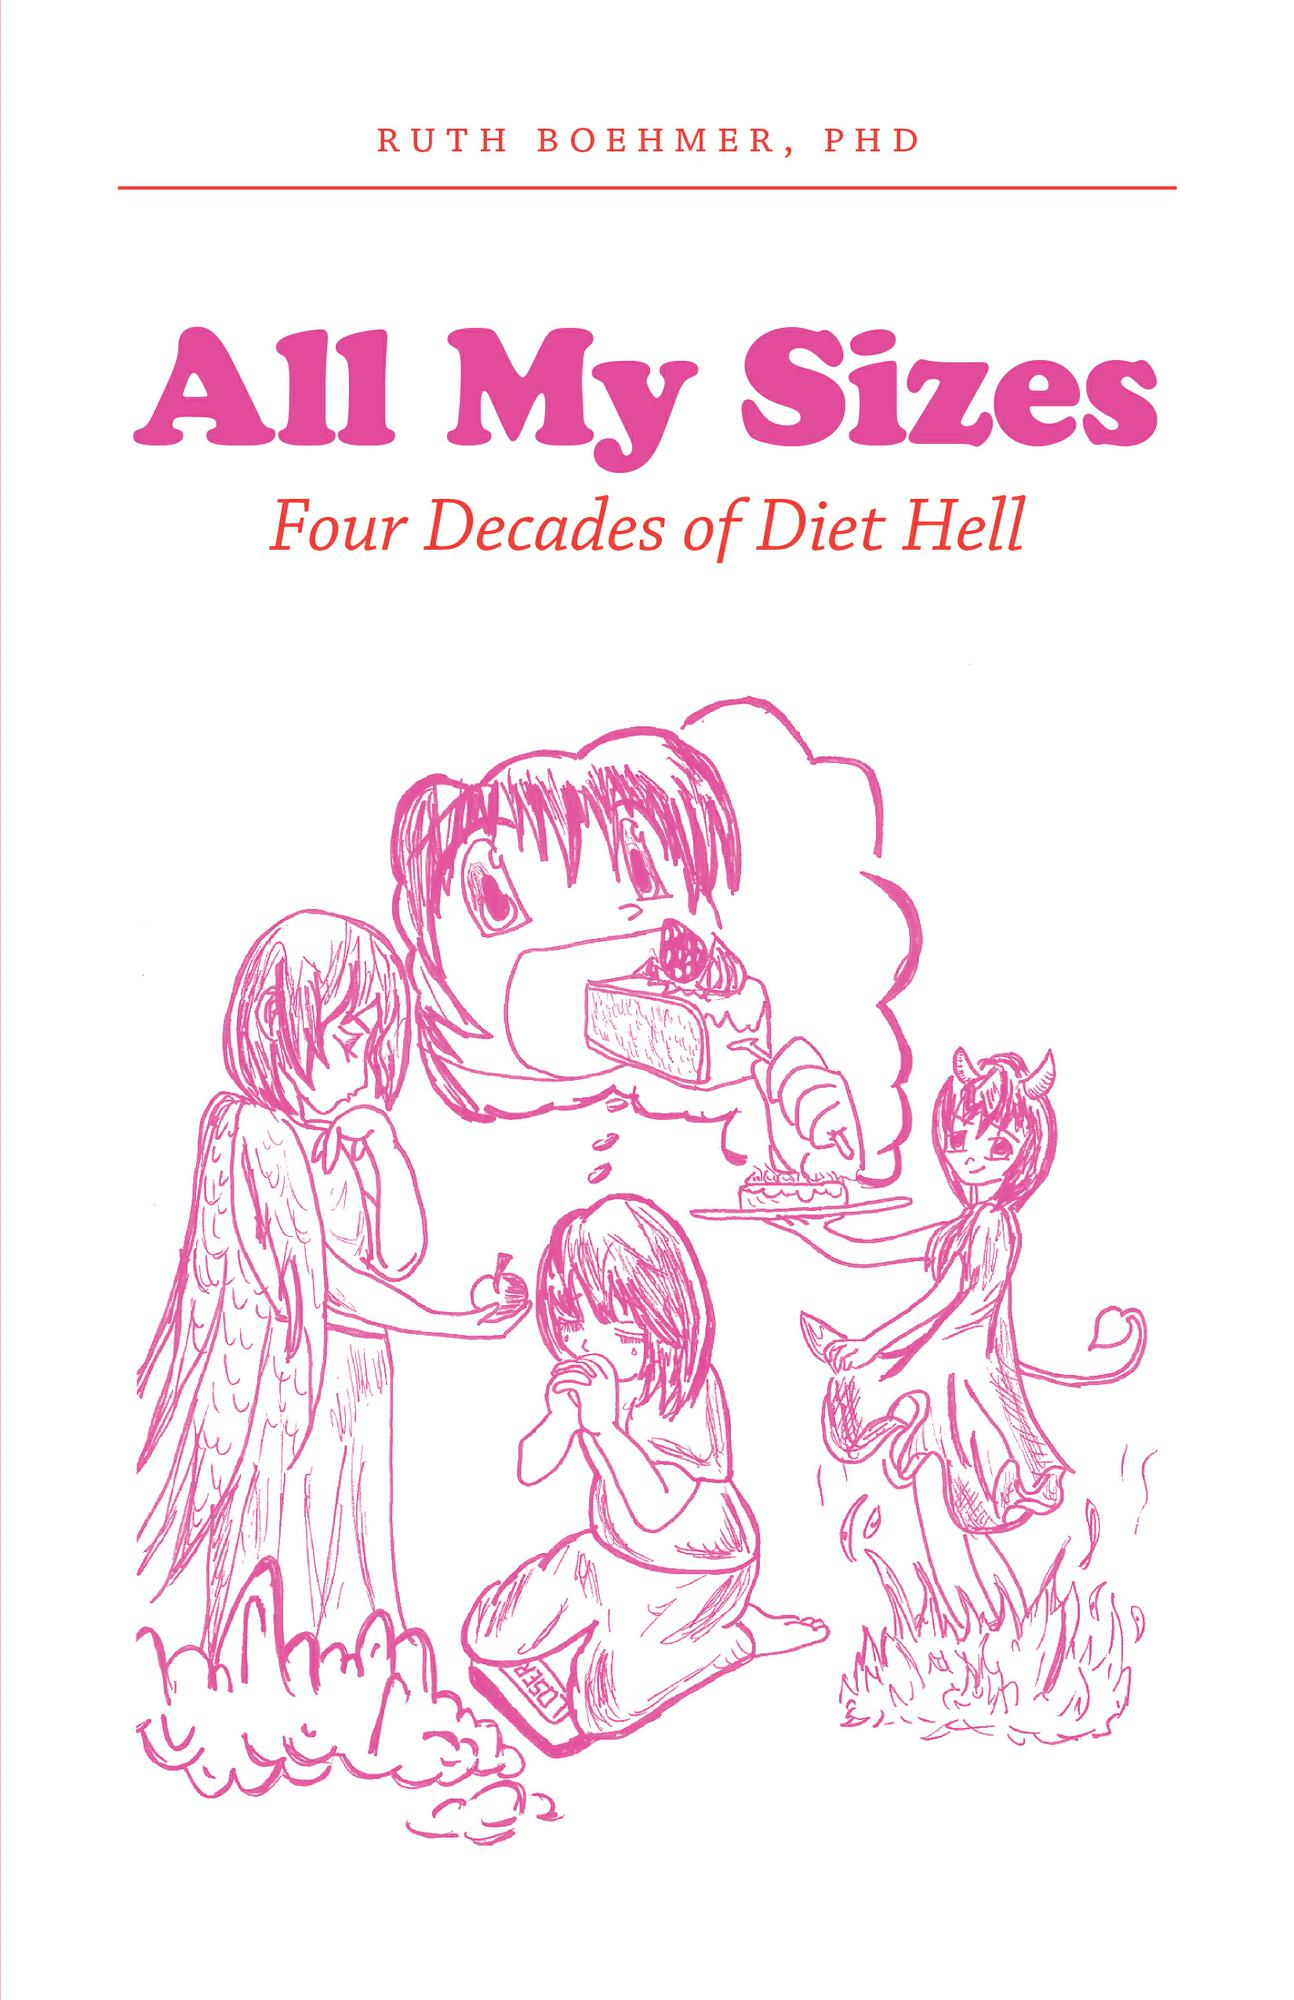 All My Sizes: Four Decades of Diet Hell